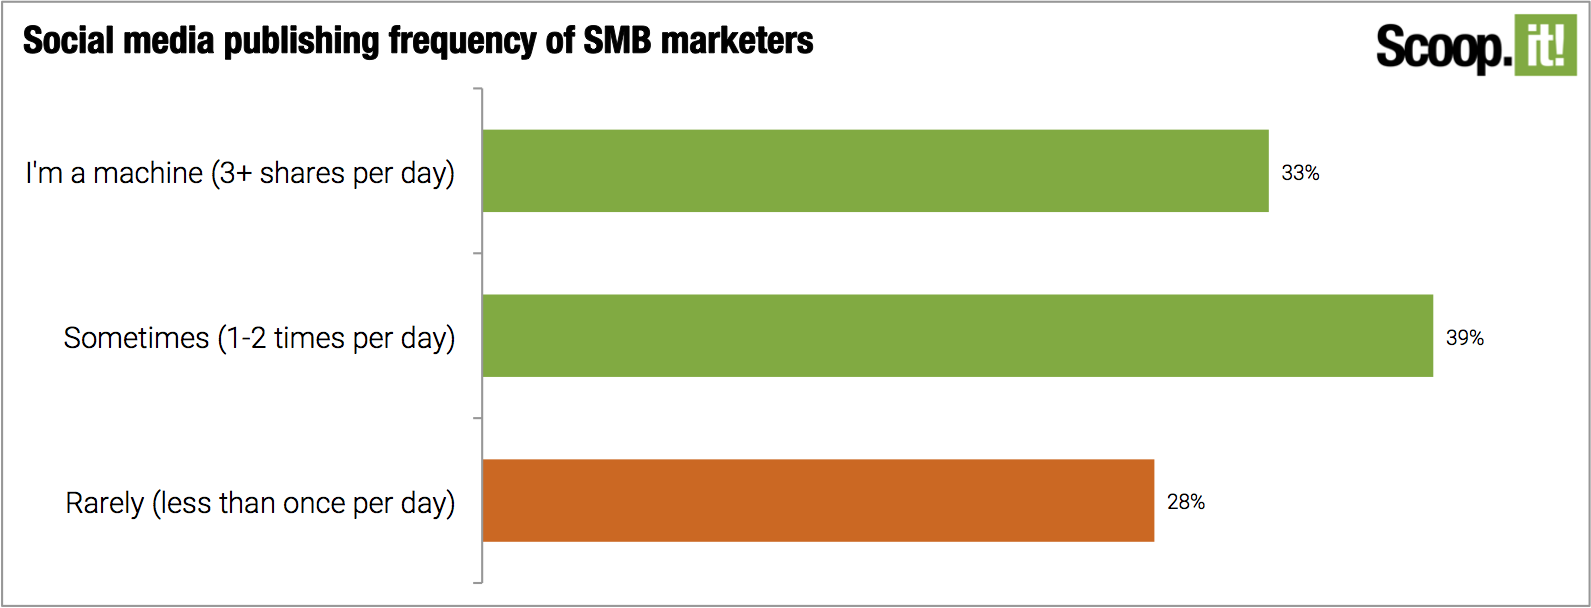 Social media publishing frequency of SMB marketers